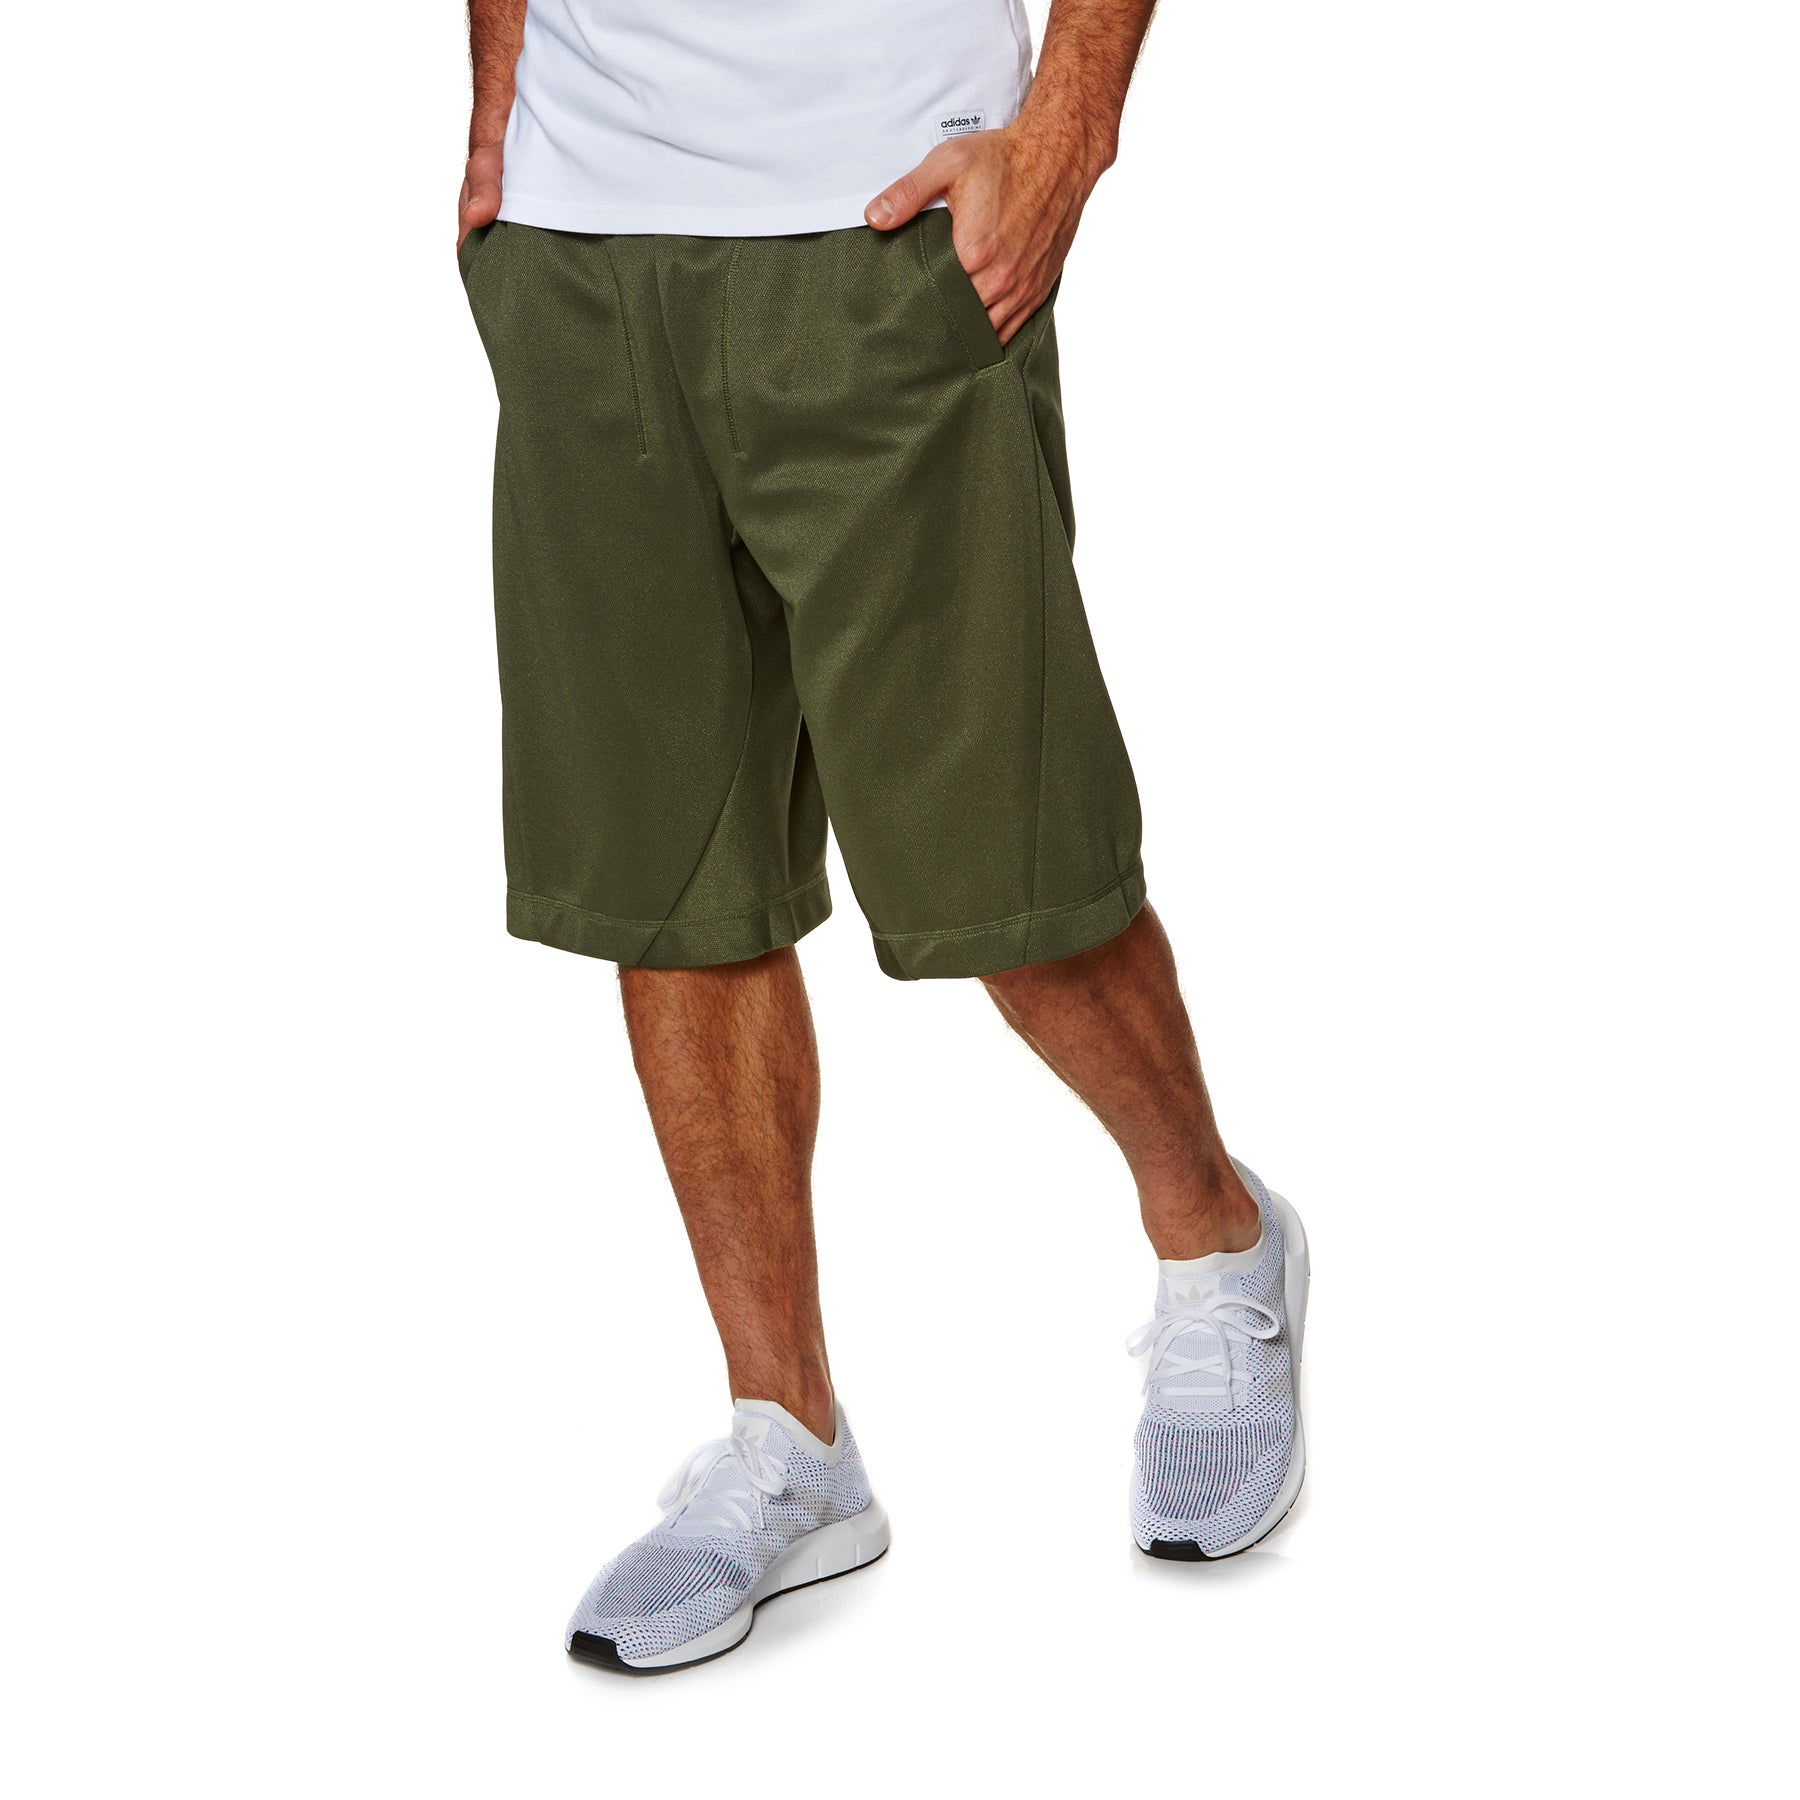 Shorts pour la Marche Adidas Originals X By O Short - Olive Cargo F16